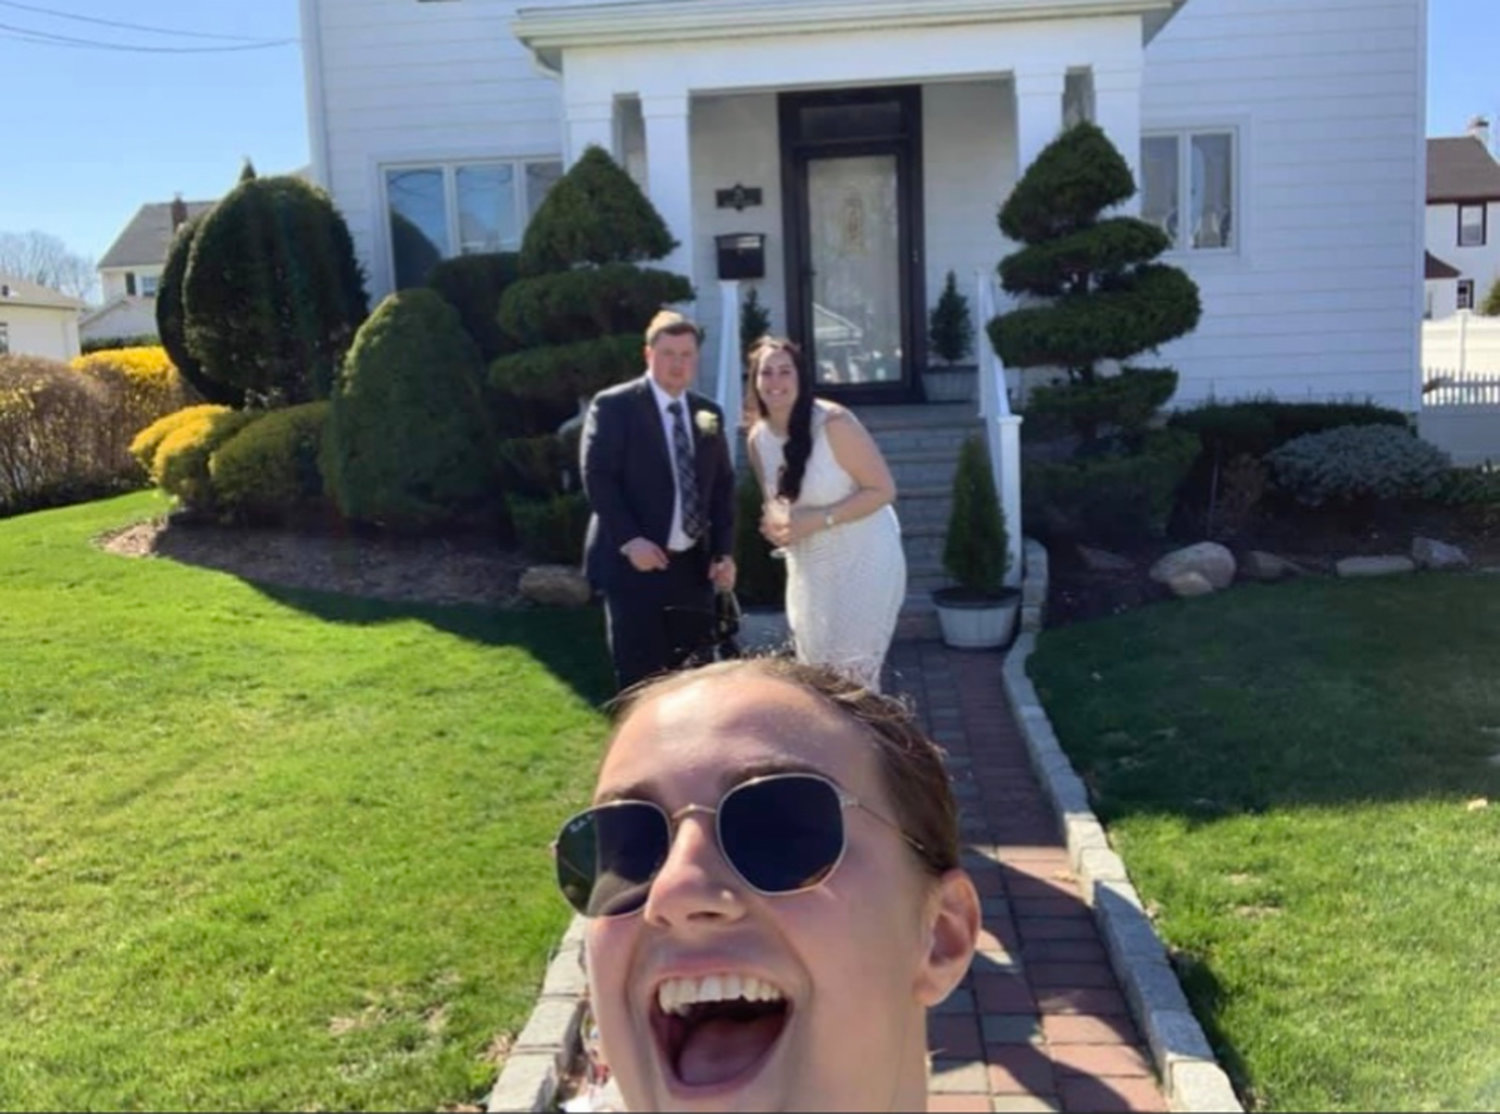 from a suitable distance, the groom's cousin Emily Garren took a selfie with the happy couple.